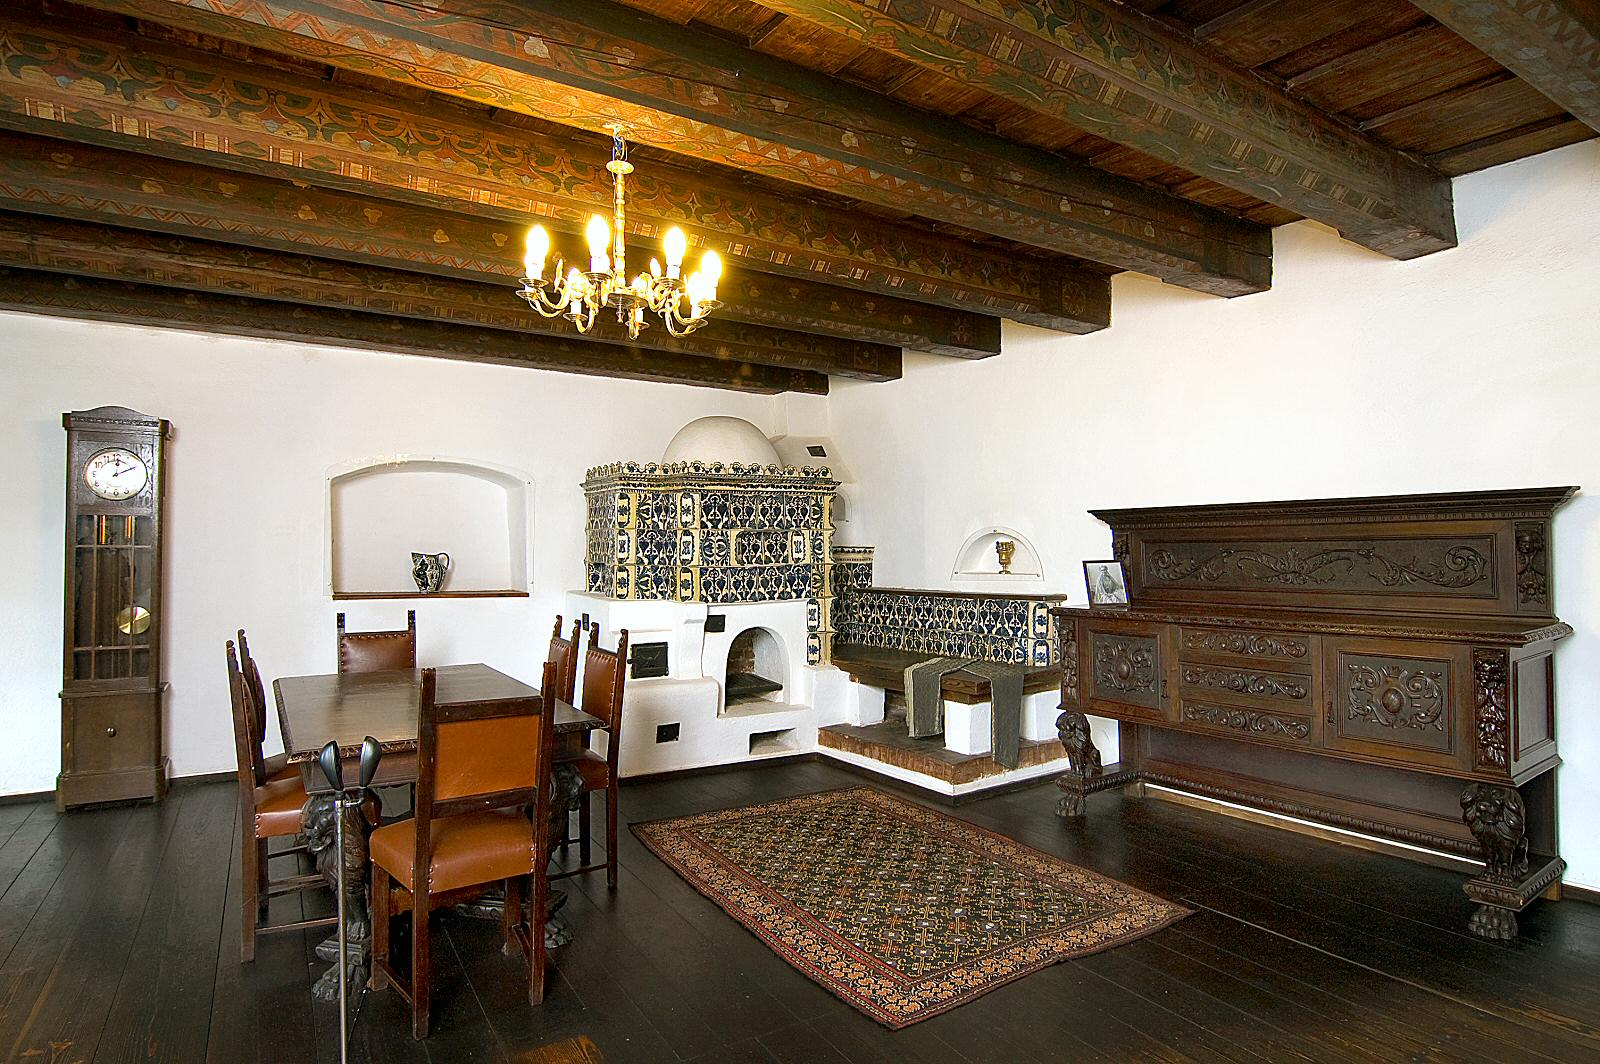 Ornamental motifs are carved out in the furniture or painted on the massive ceiling beams